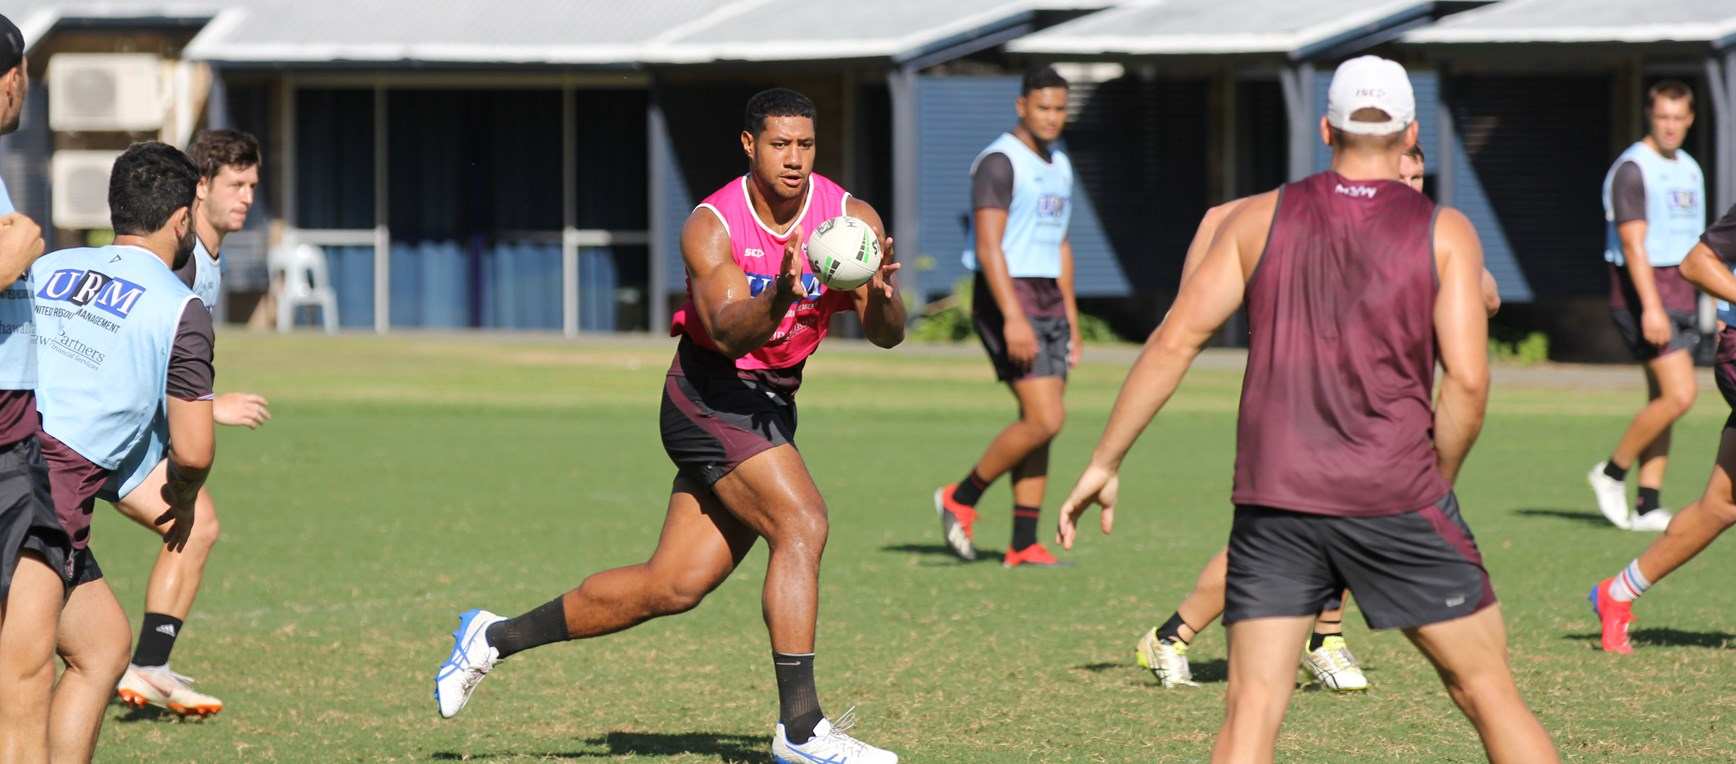 Summer sessions continue for Sea Eagles